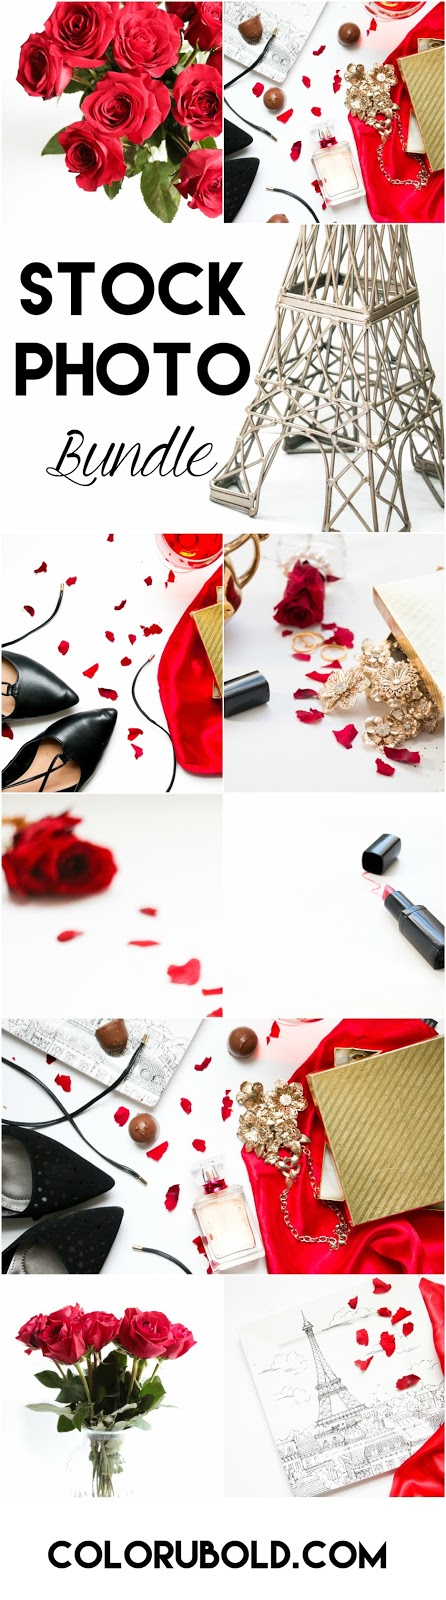 Valentines style stock photos for bloggers and entrepreneurs. Use for social media, blogs, pinterest graphics, sale pages, and so much more.